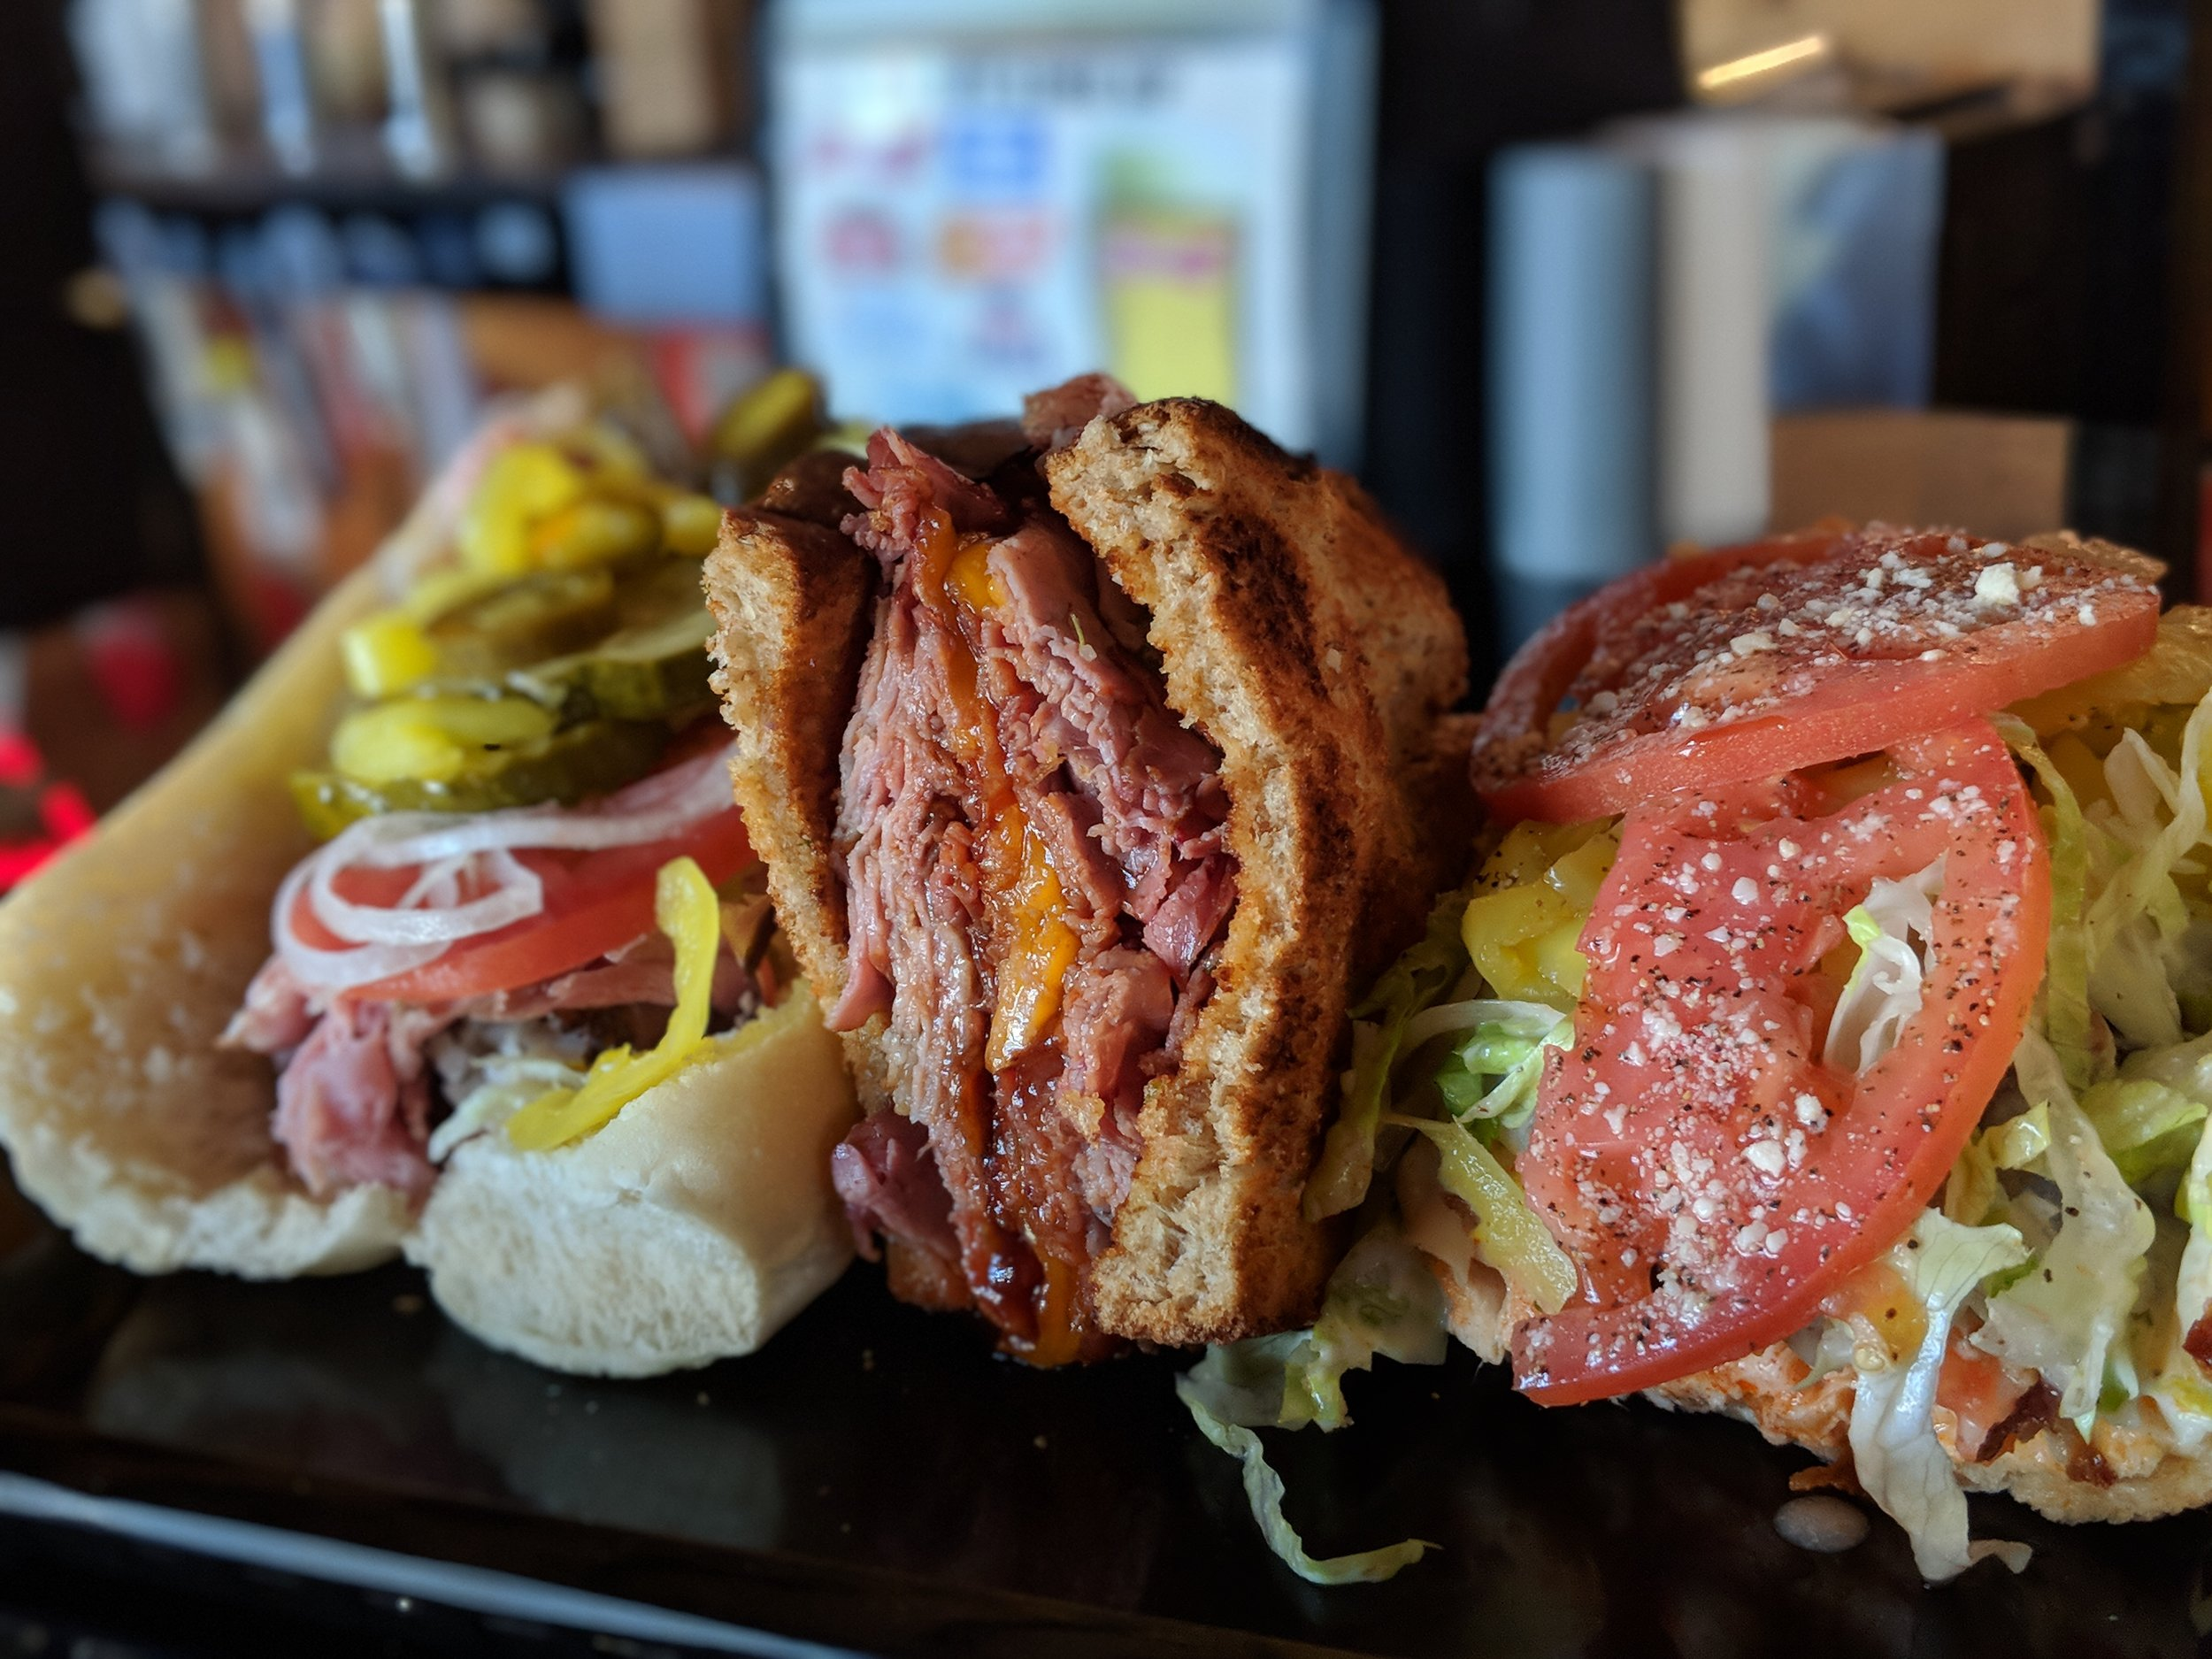 Dagwoods Deli of vero beach Sandwiches